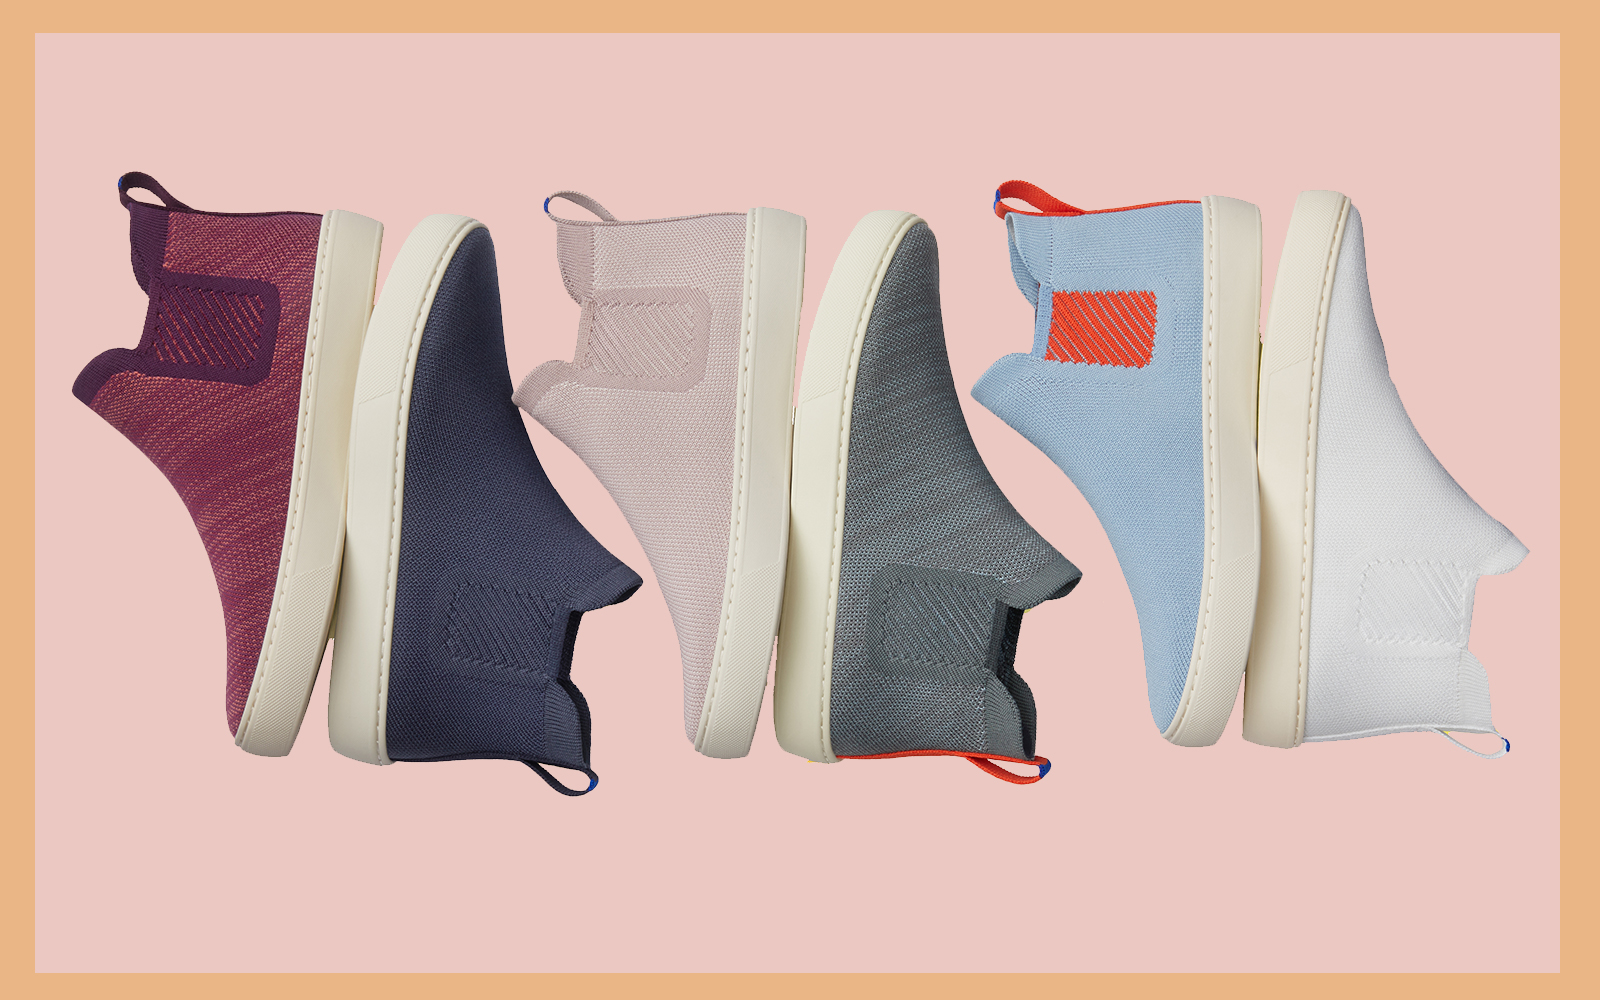 Rothy's Chelsea Boot Lead